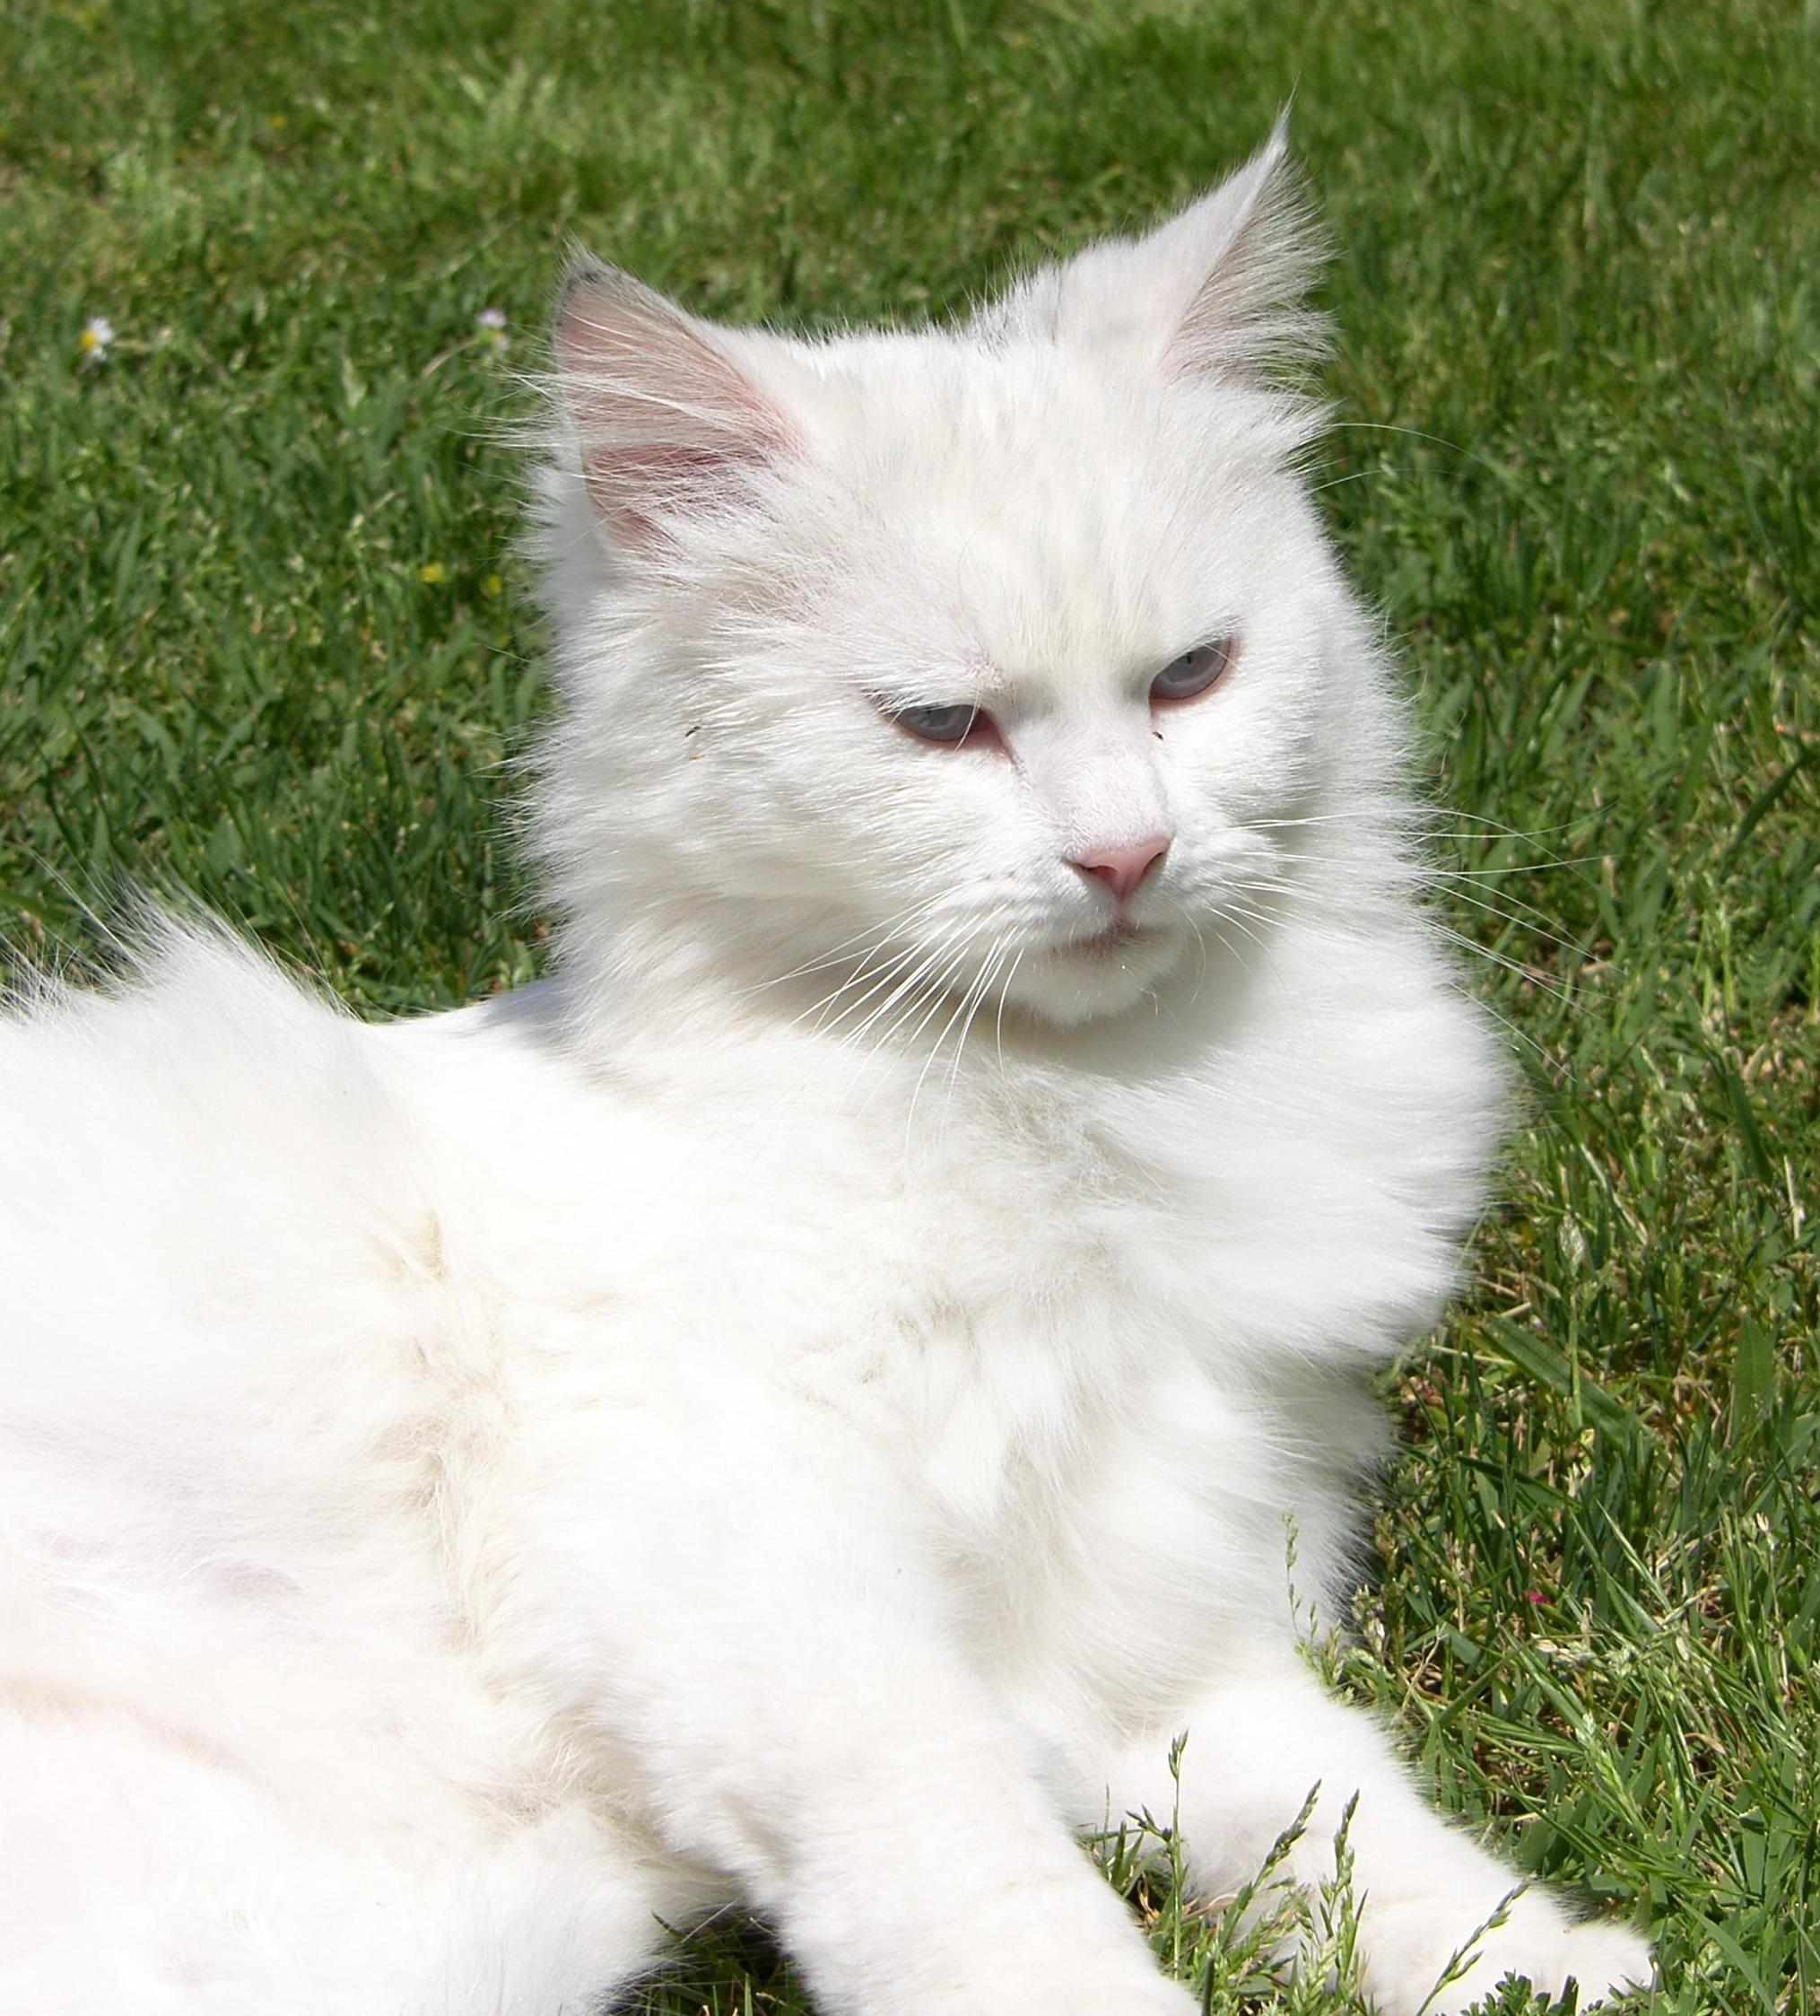 Free picture: white cat, cute, fur, grass, persian cat, animal, pet ...